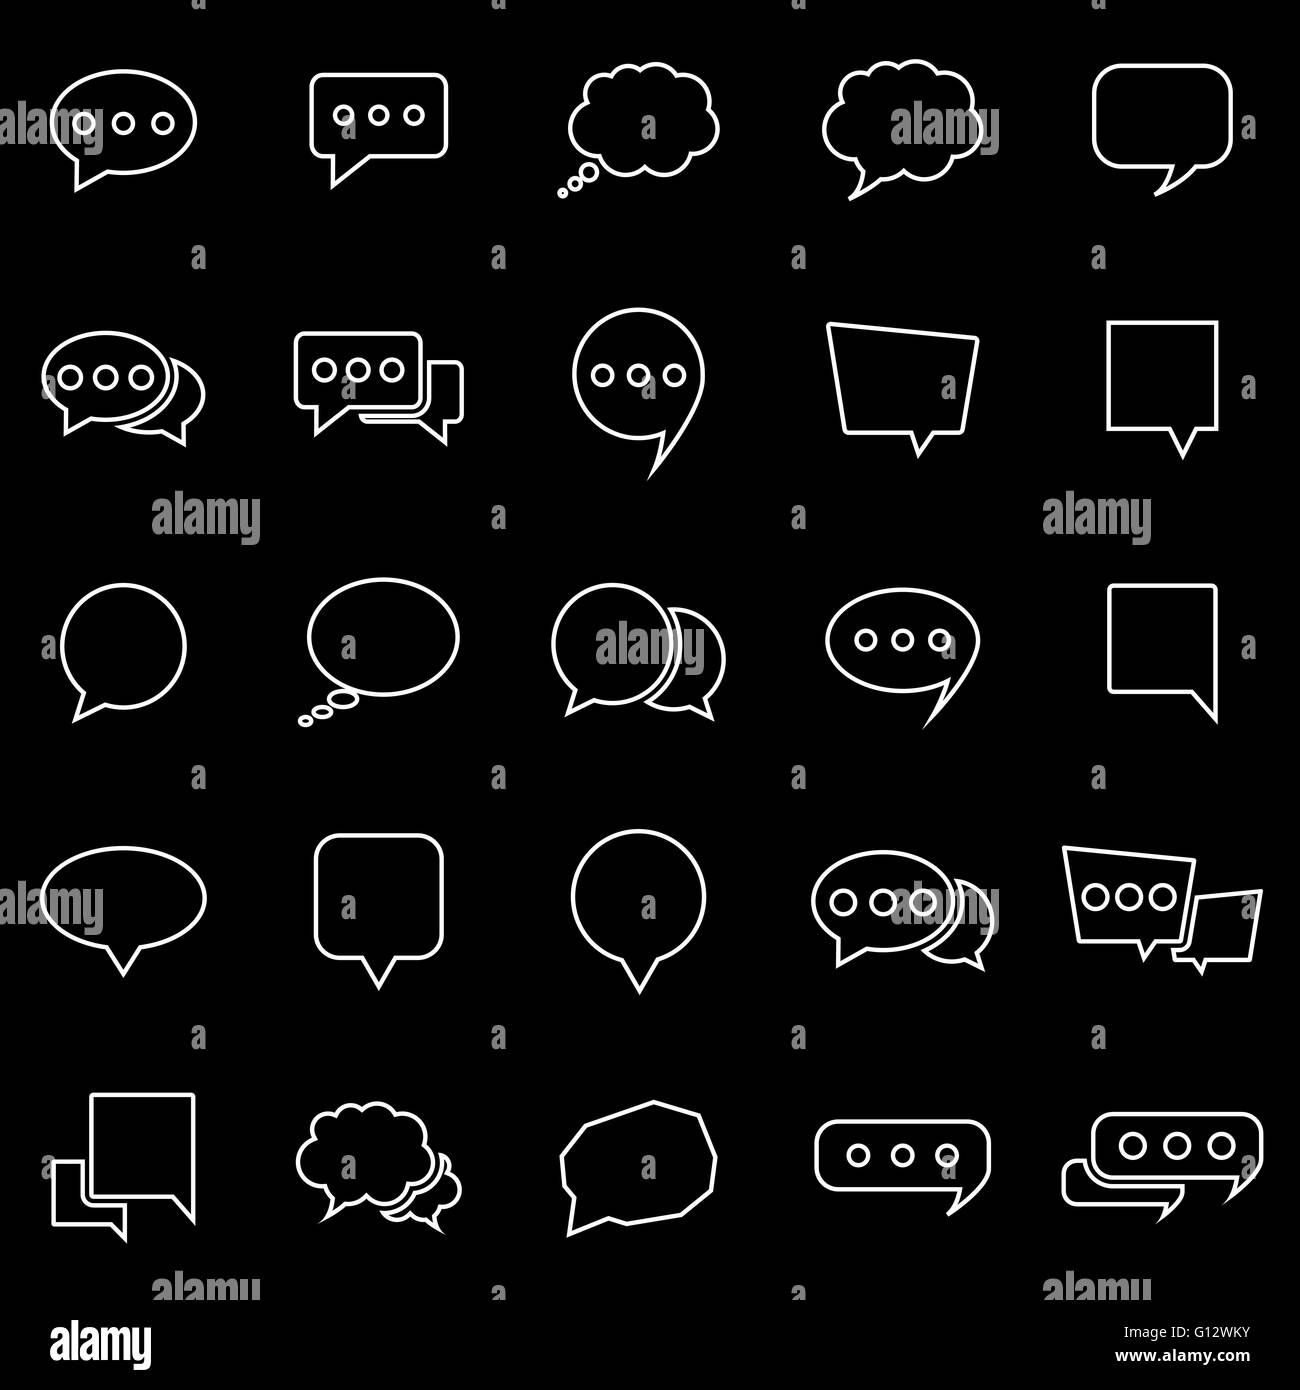 chat line icons on black background stock photos chat line icons